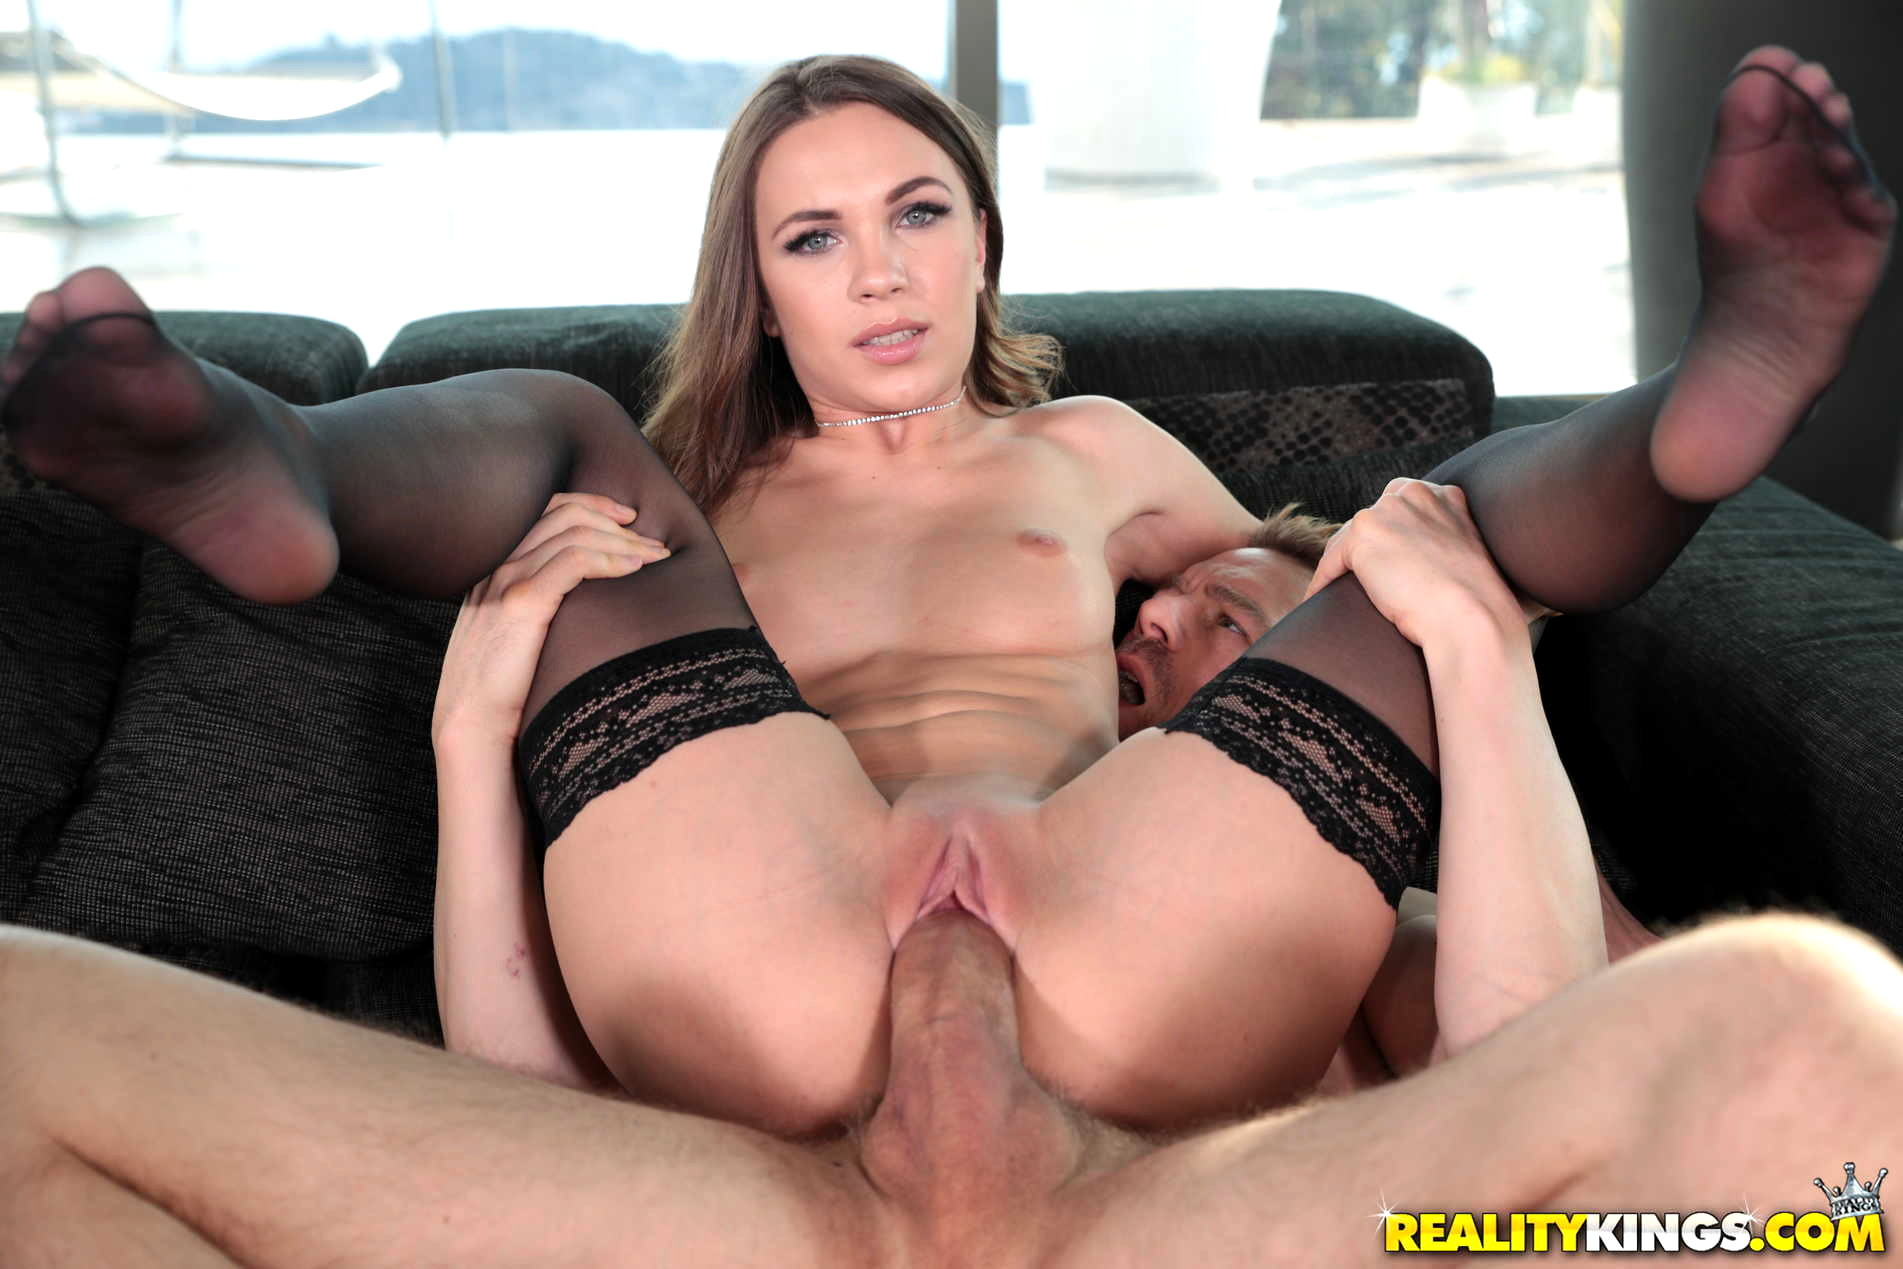 Porn sex for the first time-4988